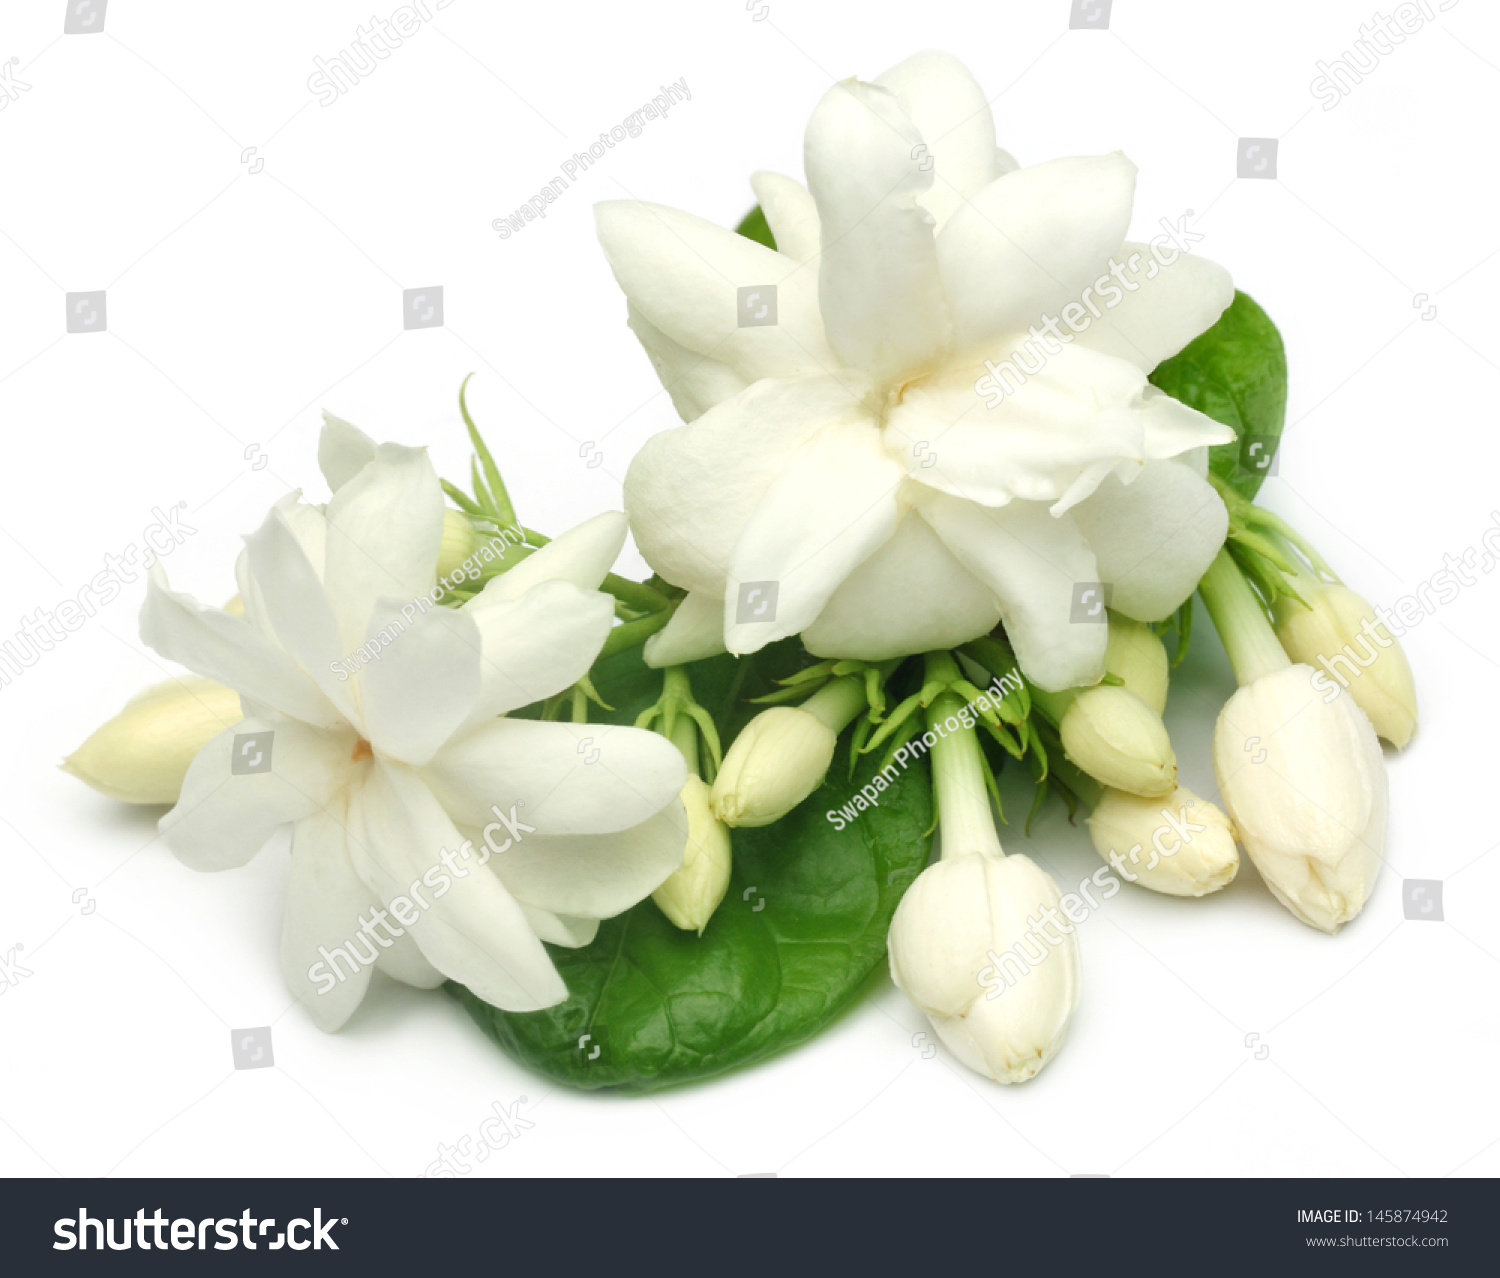 Jasmine Flower Leaves Stock Photo Edit Now 145874942 Shutterstock